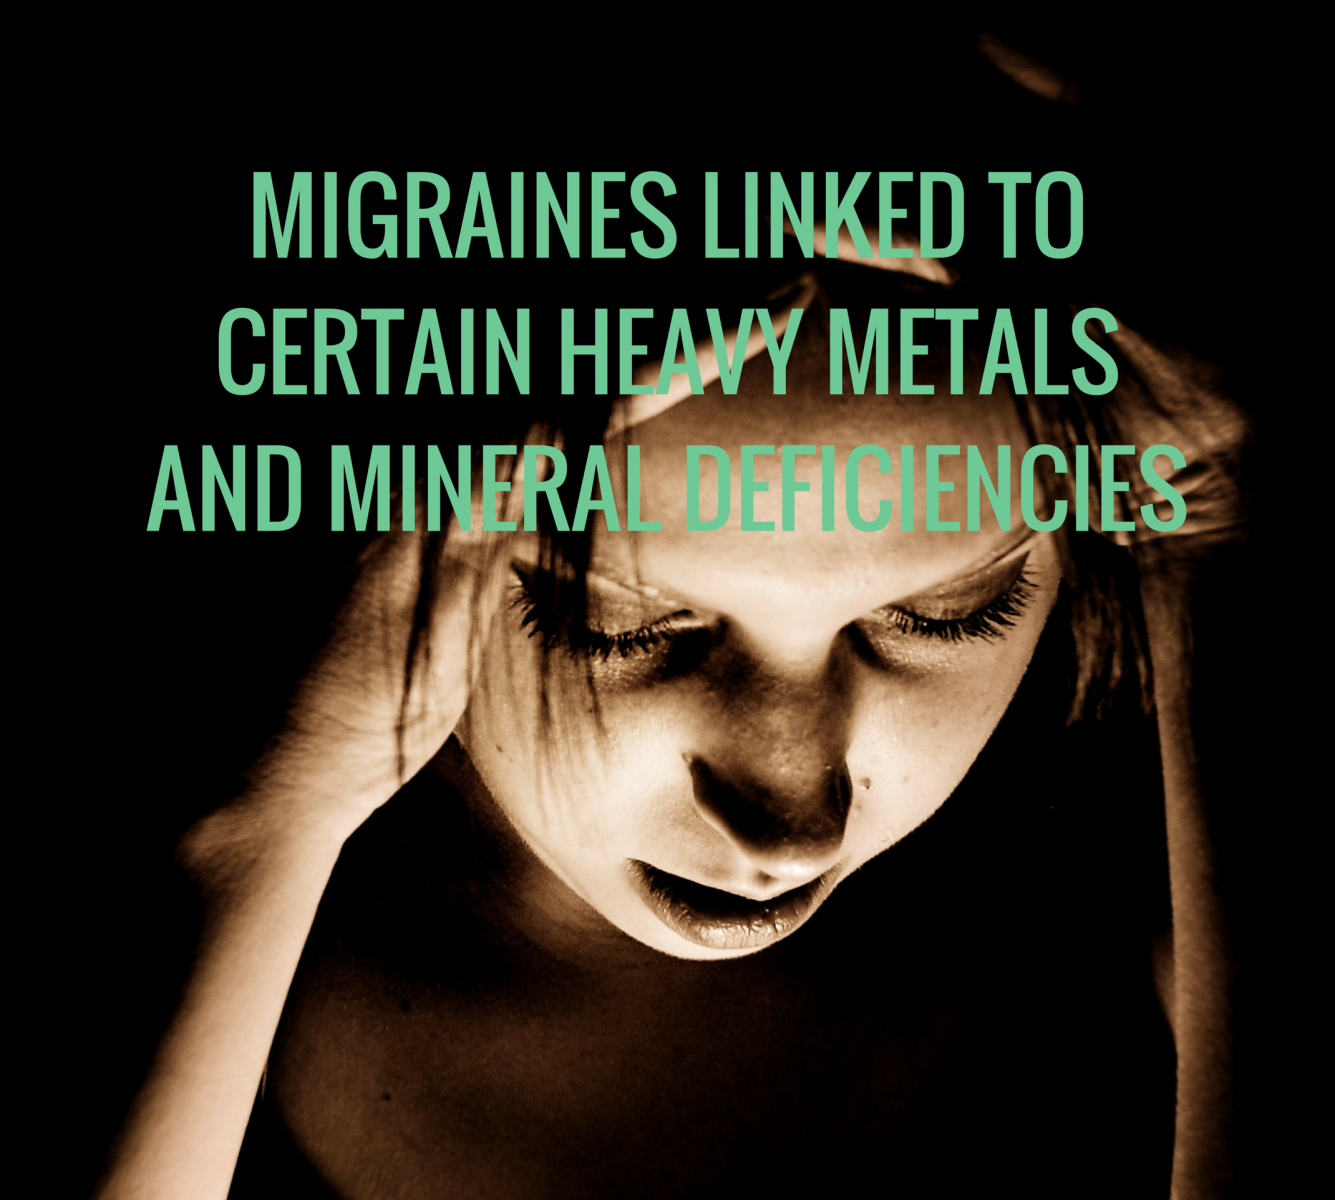 Migraines Linked to Certain Heavy Metals and Mineral Deficiencies